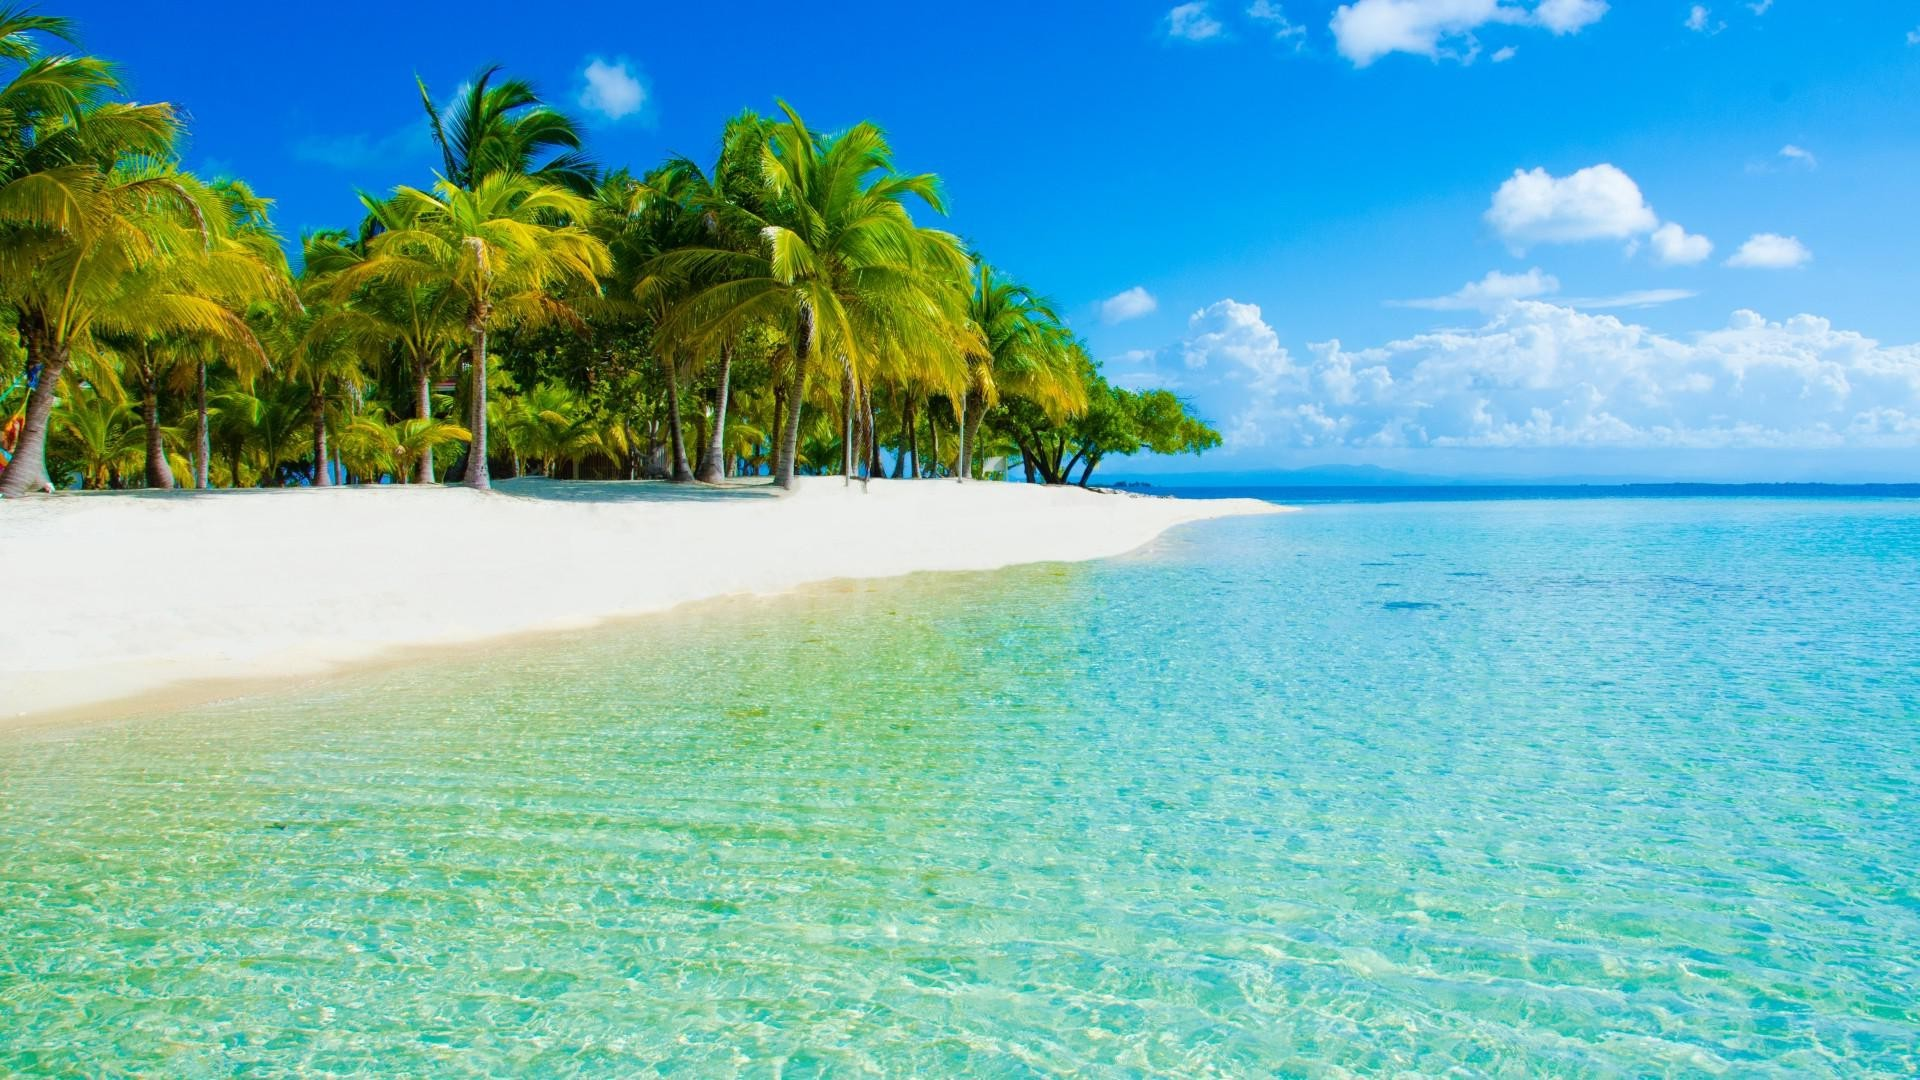 Beach Free Ipad Wallpapers: Island Background ·① Download Free Cool Full HD Wallpapers